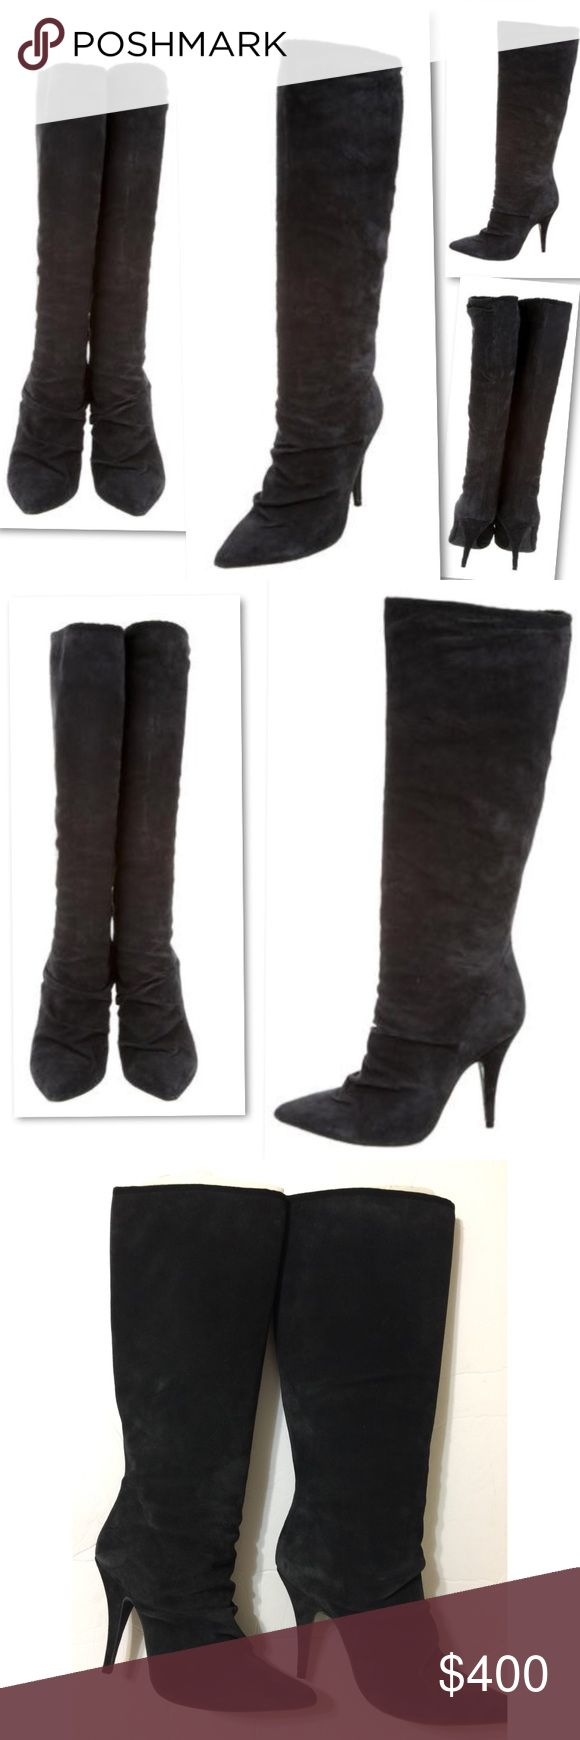 PEDRO GARCIA RUCHED PENCIL THIN SUEDE HEELS BOOTS PEDRO GARCIA RUCHED PENCIL THIN SUEDE HEELS BOOTS SZ 37 / 7 - LOOKS LIKE A CHARCOAL GREY / BLACK. IT MIGHT BE CHARCOAL GREY. SUEDE LEATHER CAN LOOK LIGHTER OR DARKER DEPENDING ON WHICH WAY YOU RUB YOUR HAND. BLACK IS WHAT I THINK IT IS.  IT WOULD PASS FOR EITHER - JUST TRIED ON IN STORE...   never wore them out  - boot addiction and must downsize - $600 yours for a steal Pedro Garcia Shoes Heeled Boots